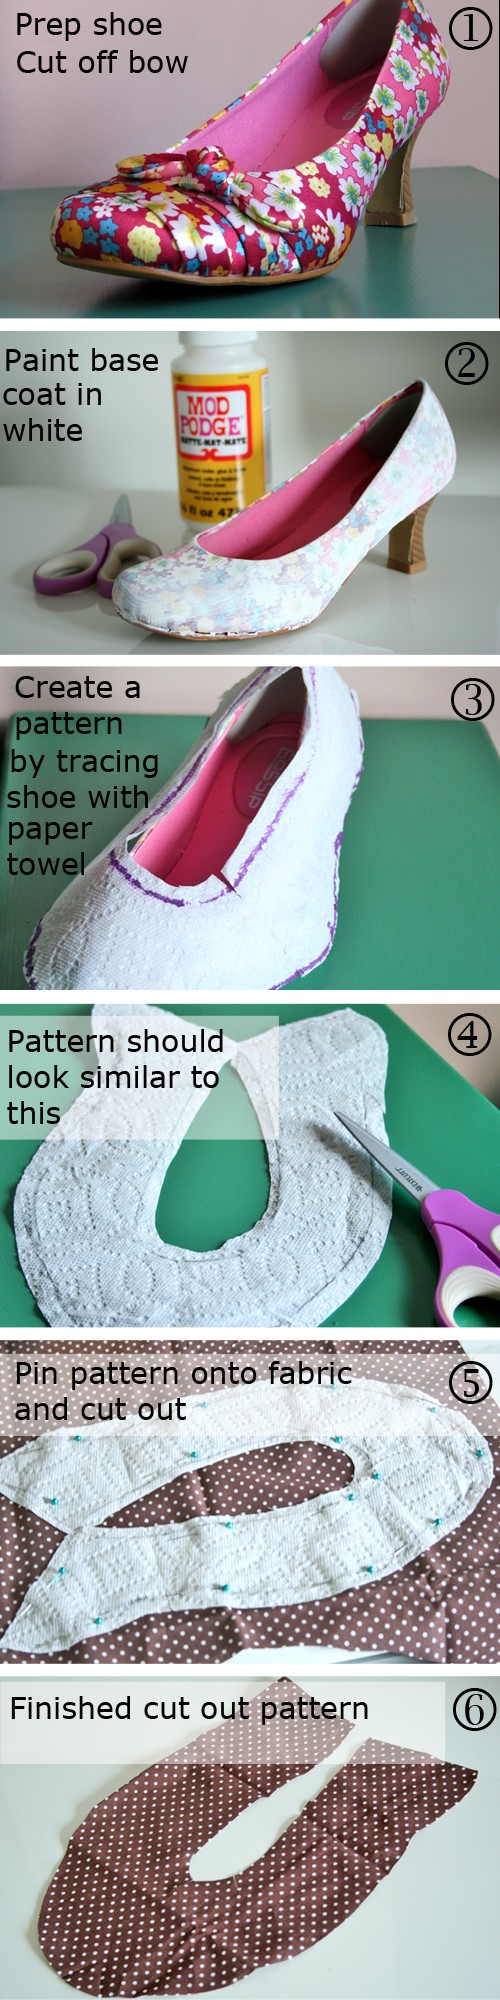 DIY fabric covered shoes instructions